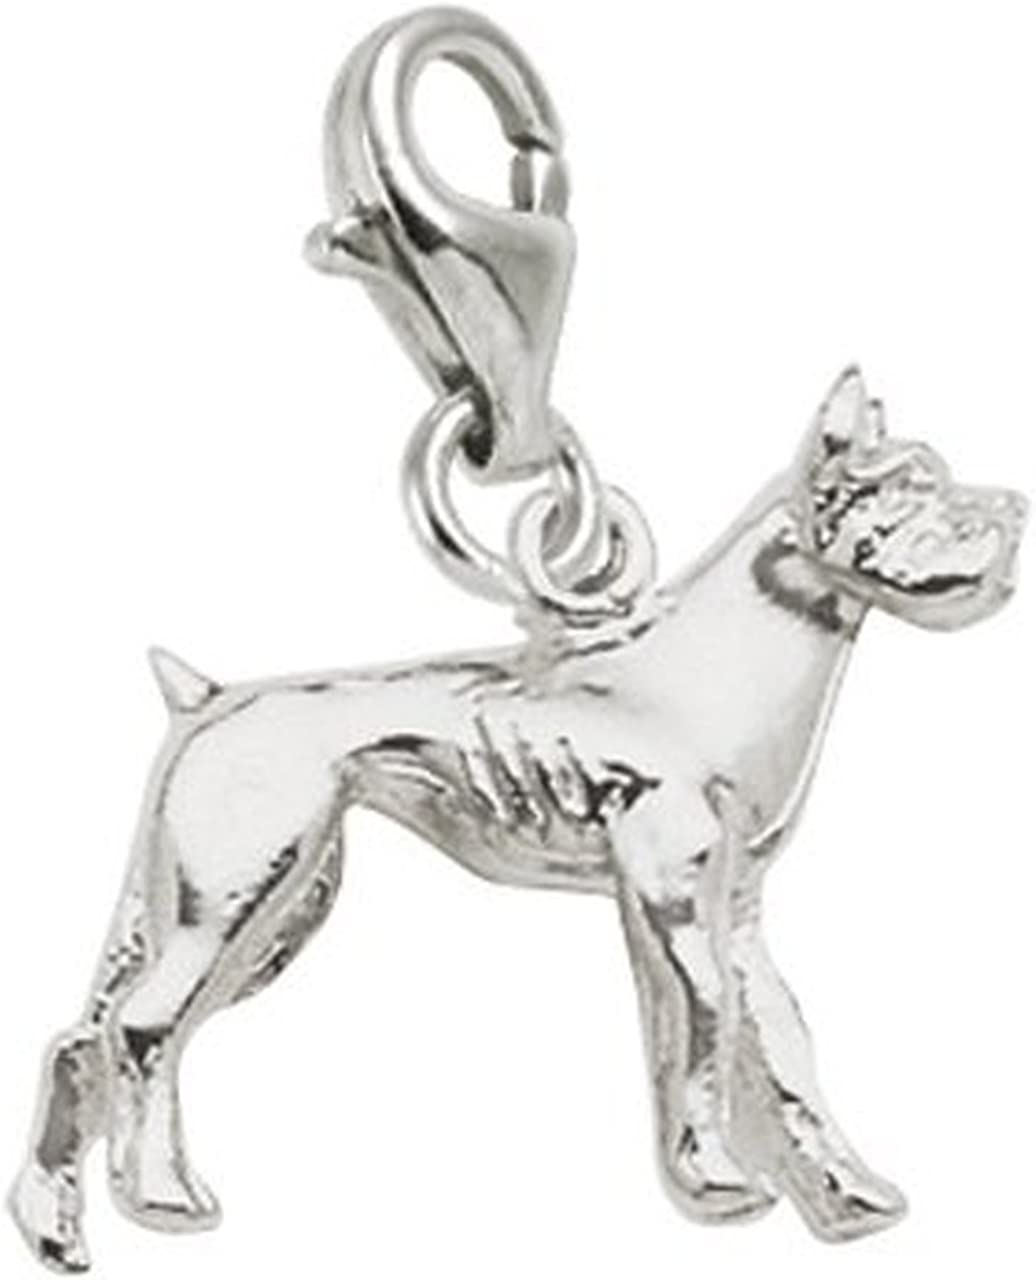 Boxer Dog Charm With Lobster Claw Clasp Charms for Bracelets and Necklaces